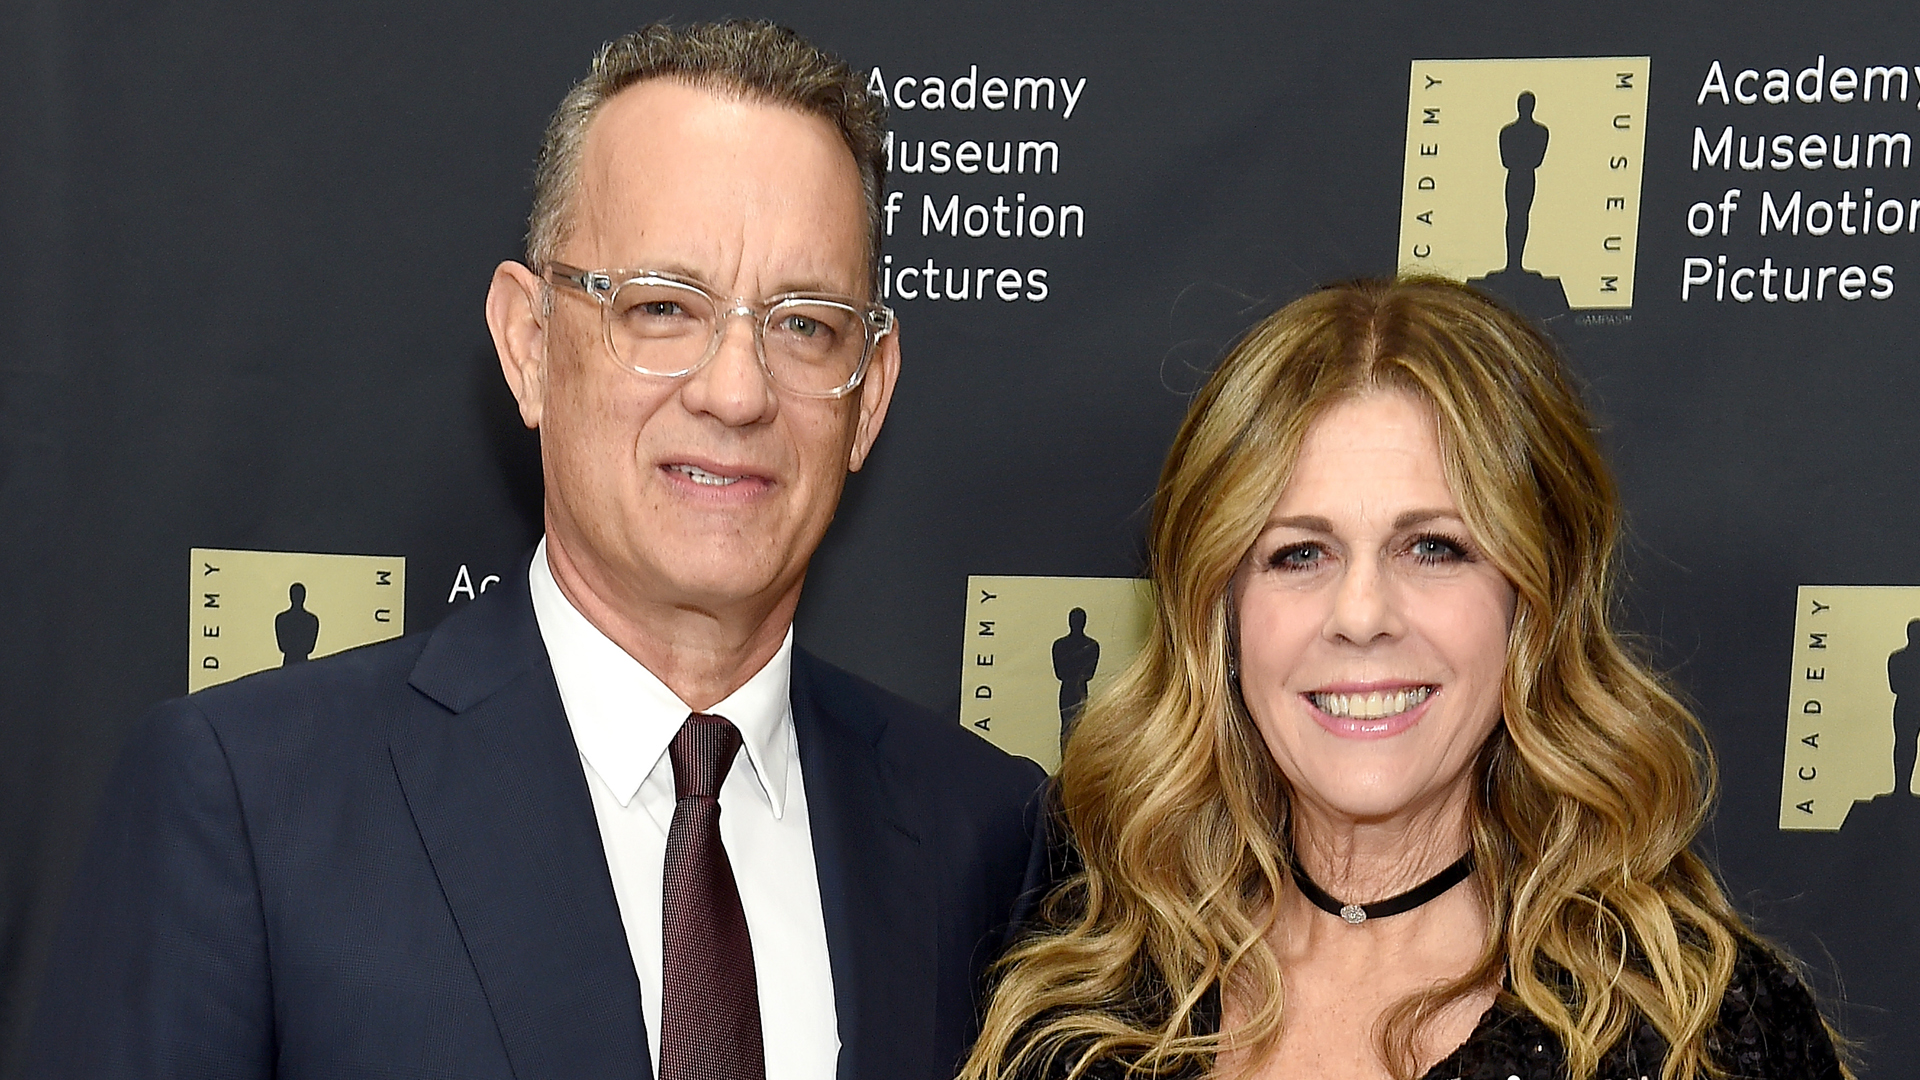 Tom Hanks and Rita Wilson are seen at an event on Dec. 4, 2018, in Los Angeles. (Credit: Gregg DeGuire/Getty Images)